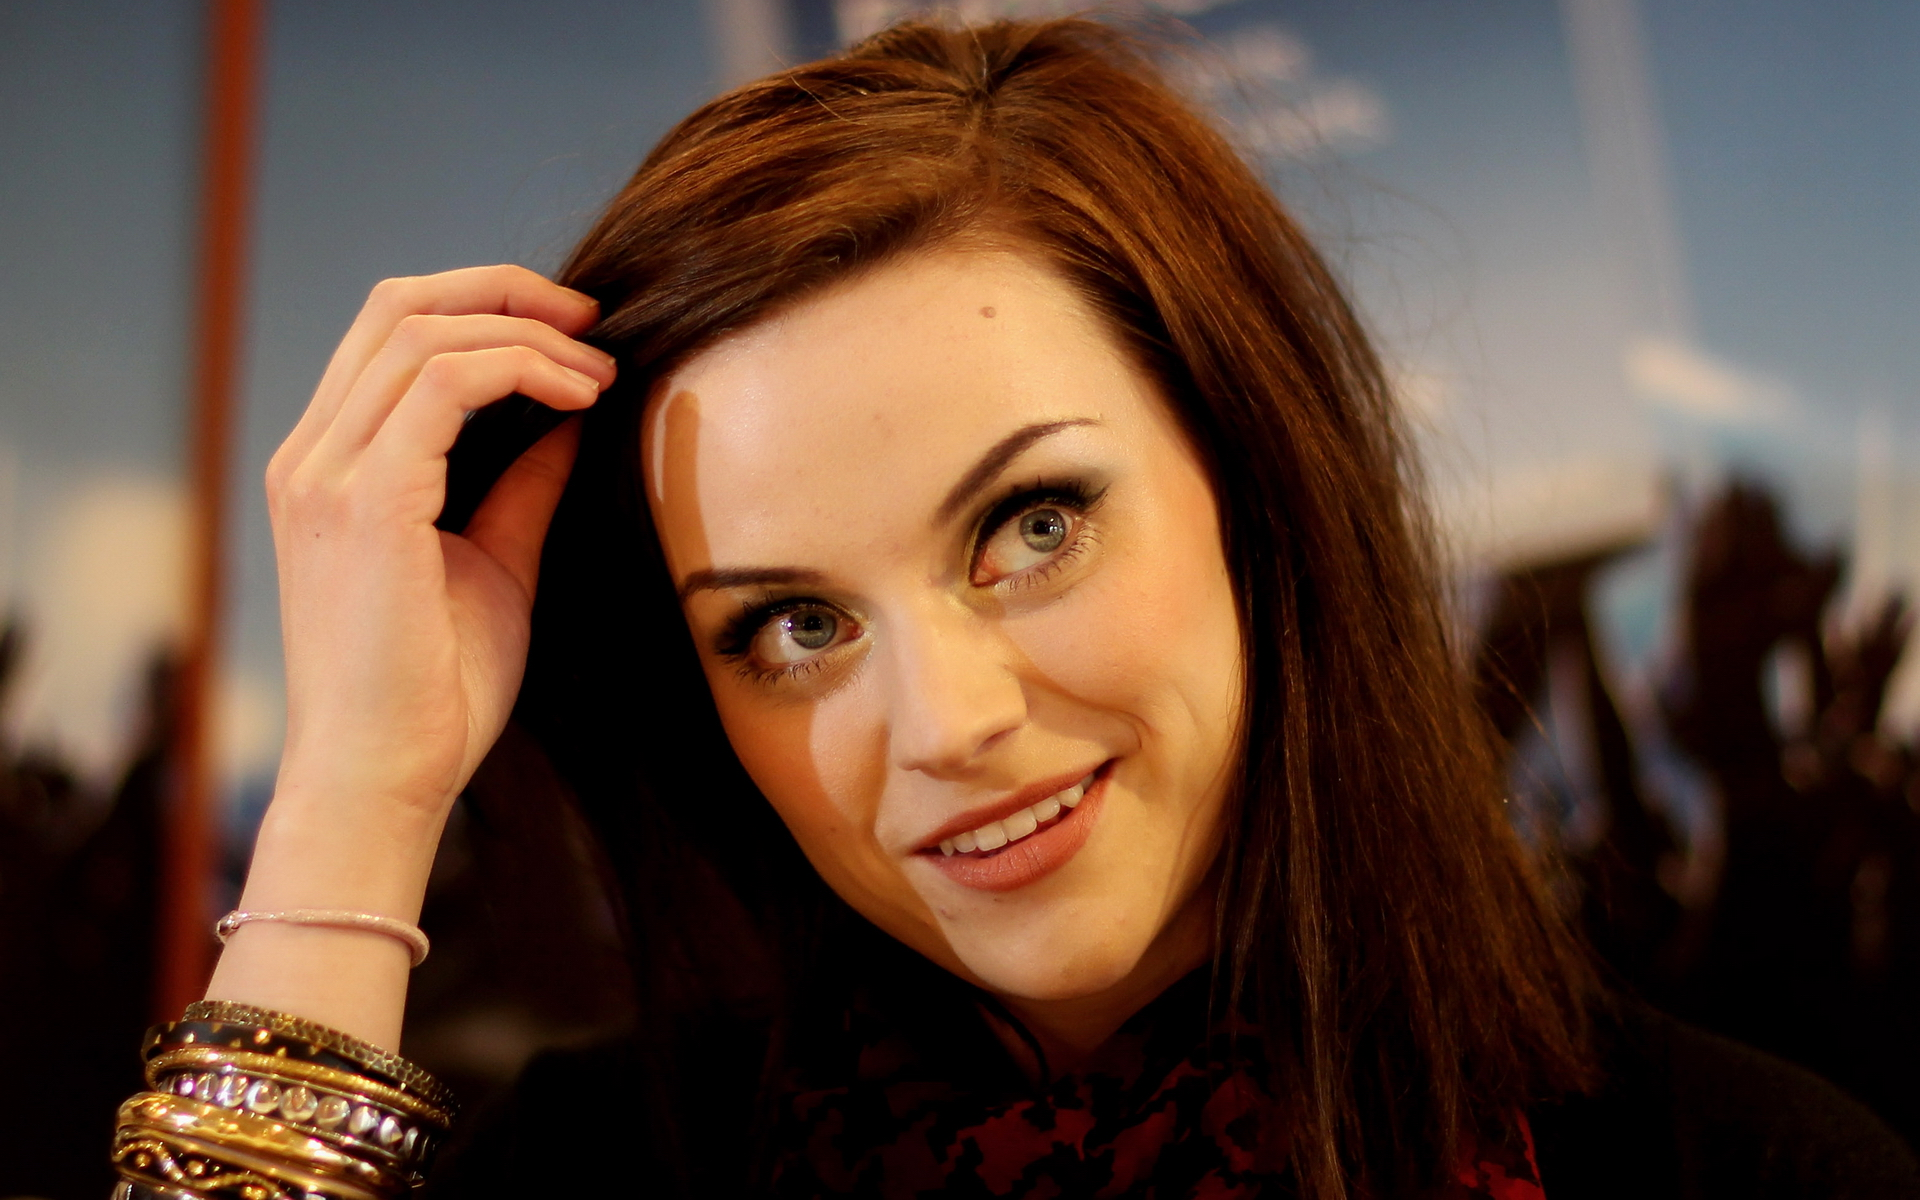 15 Hd Amy Macdonald Wallpapers